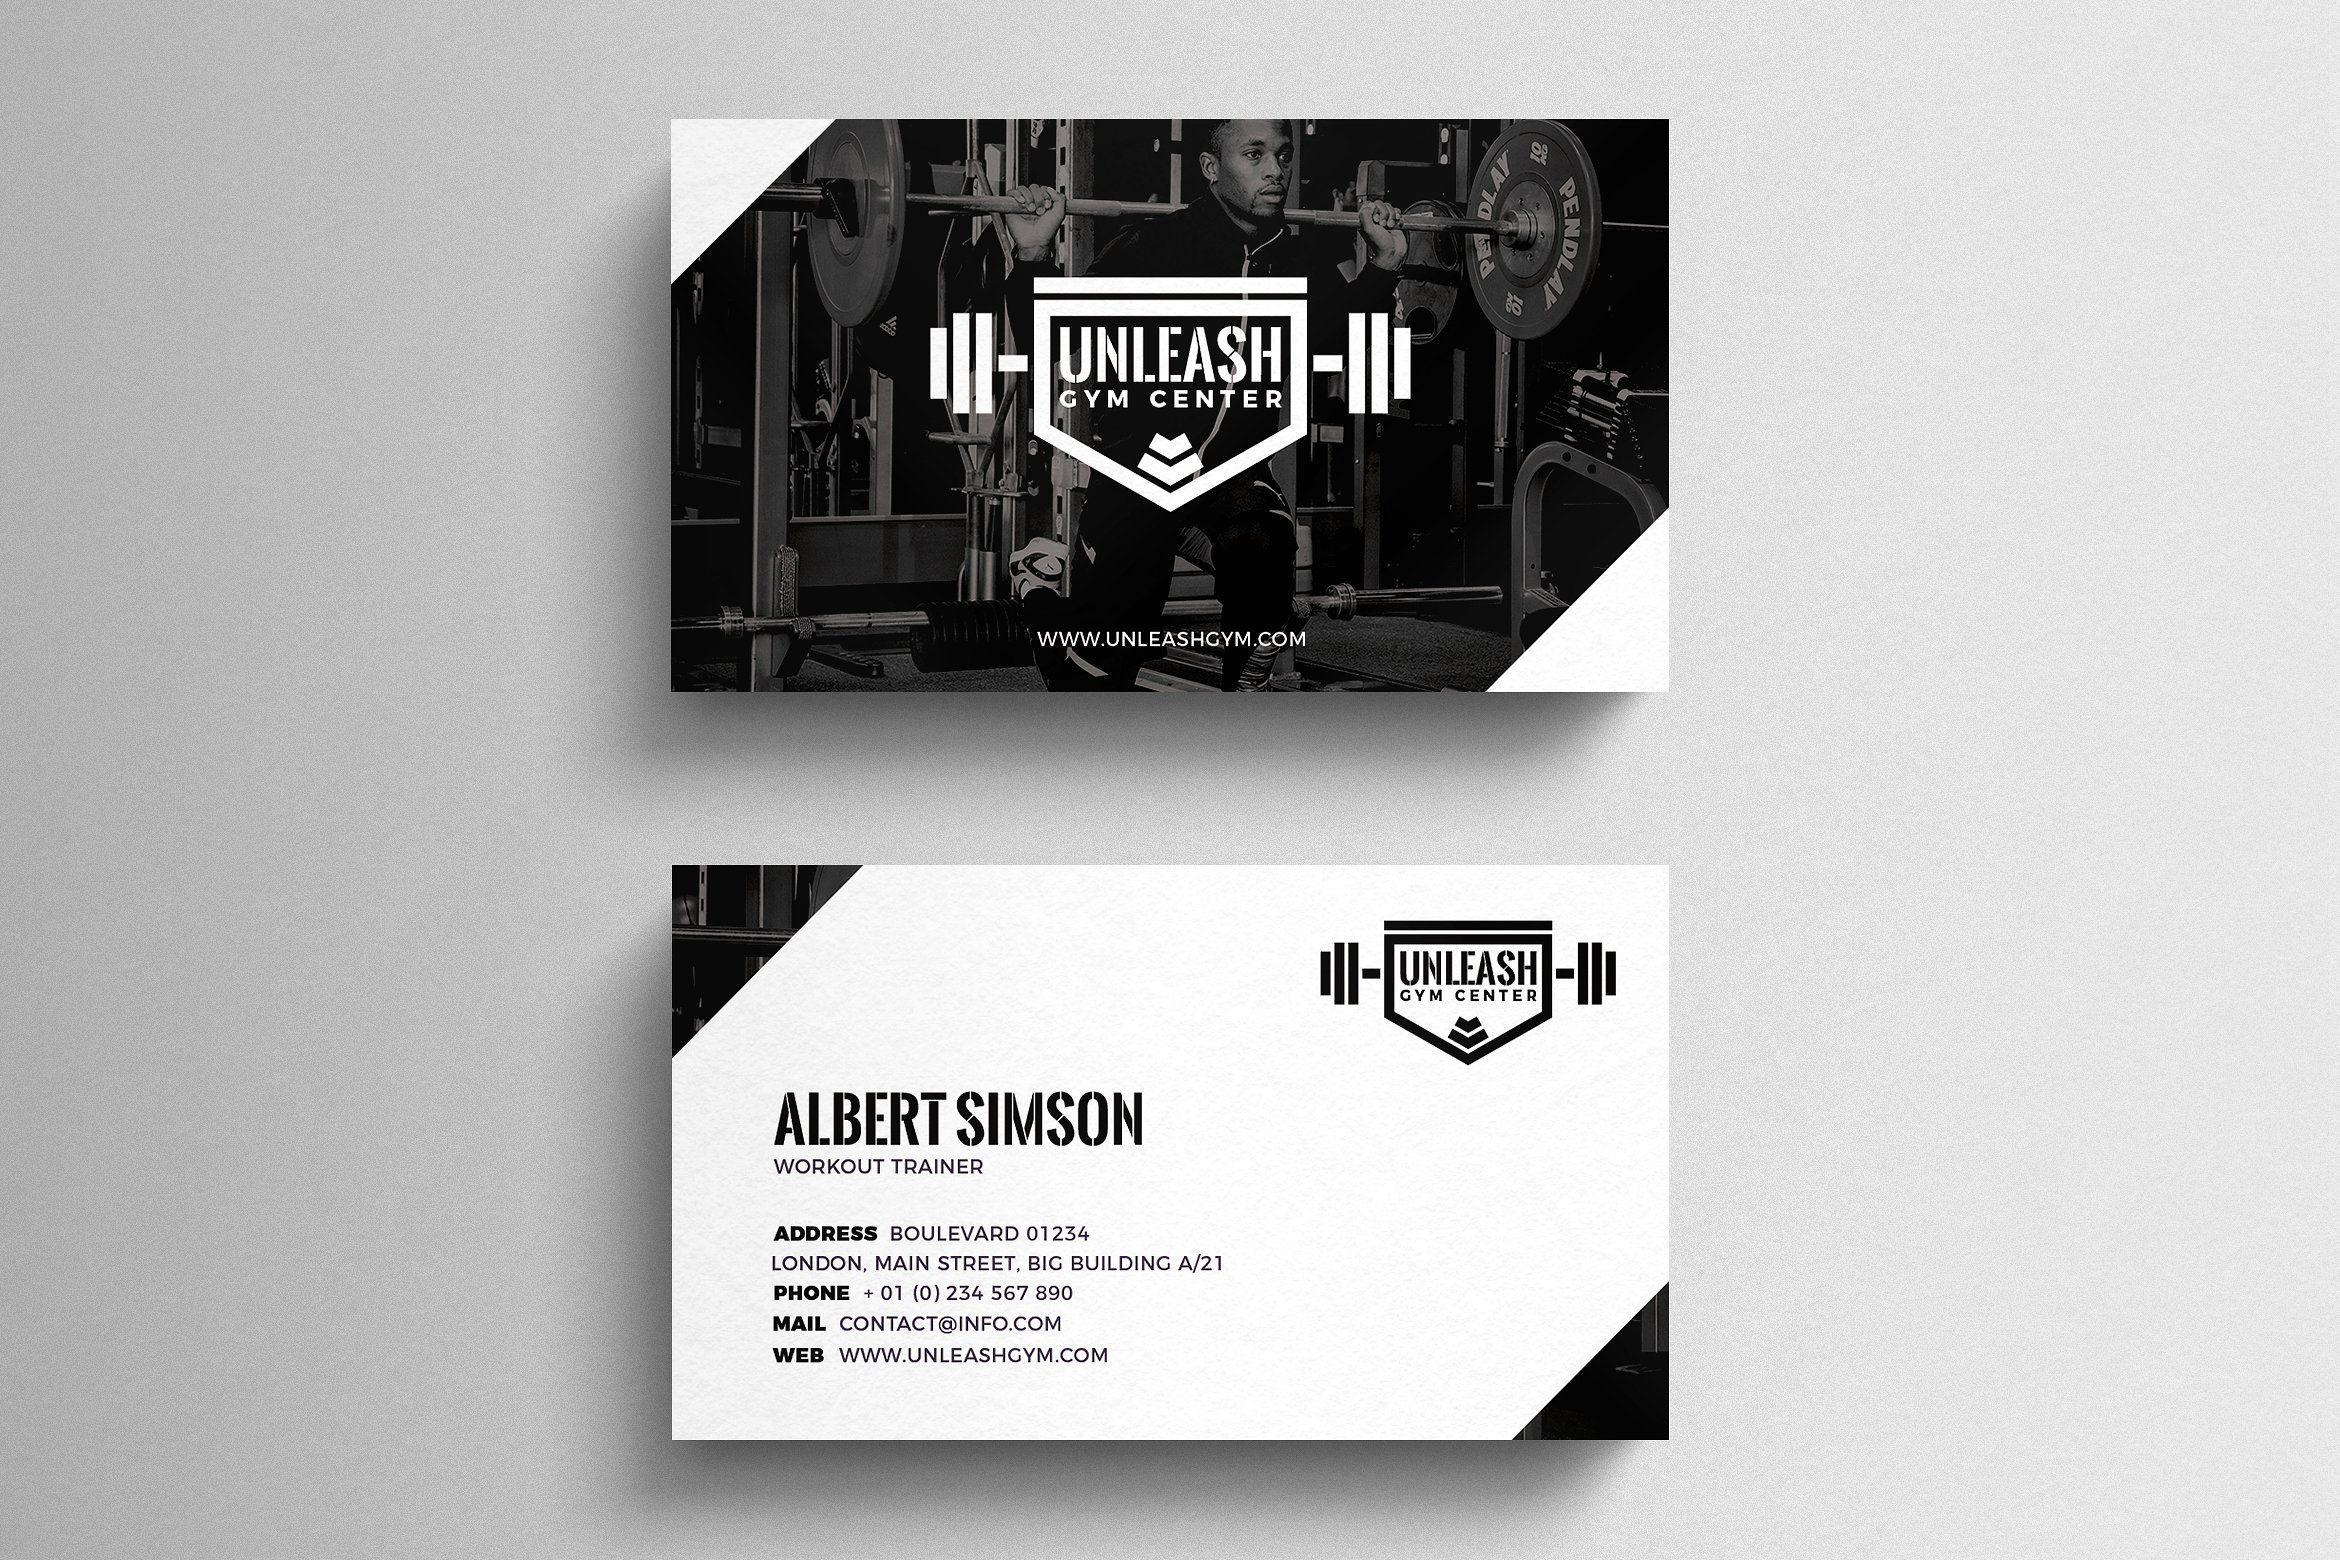 Gym business card template business card template design